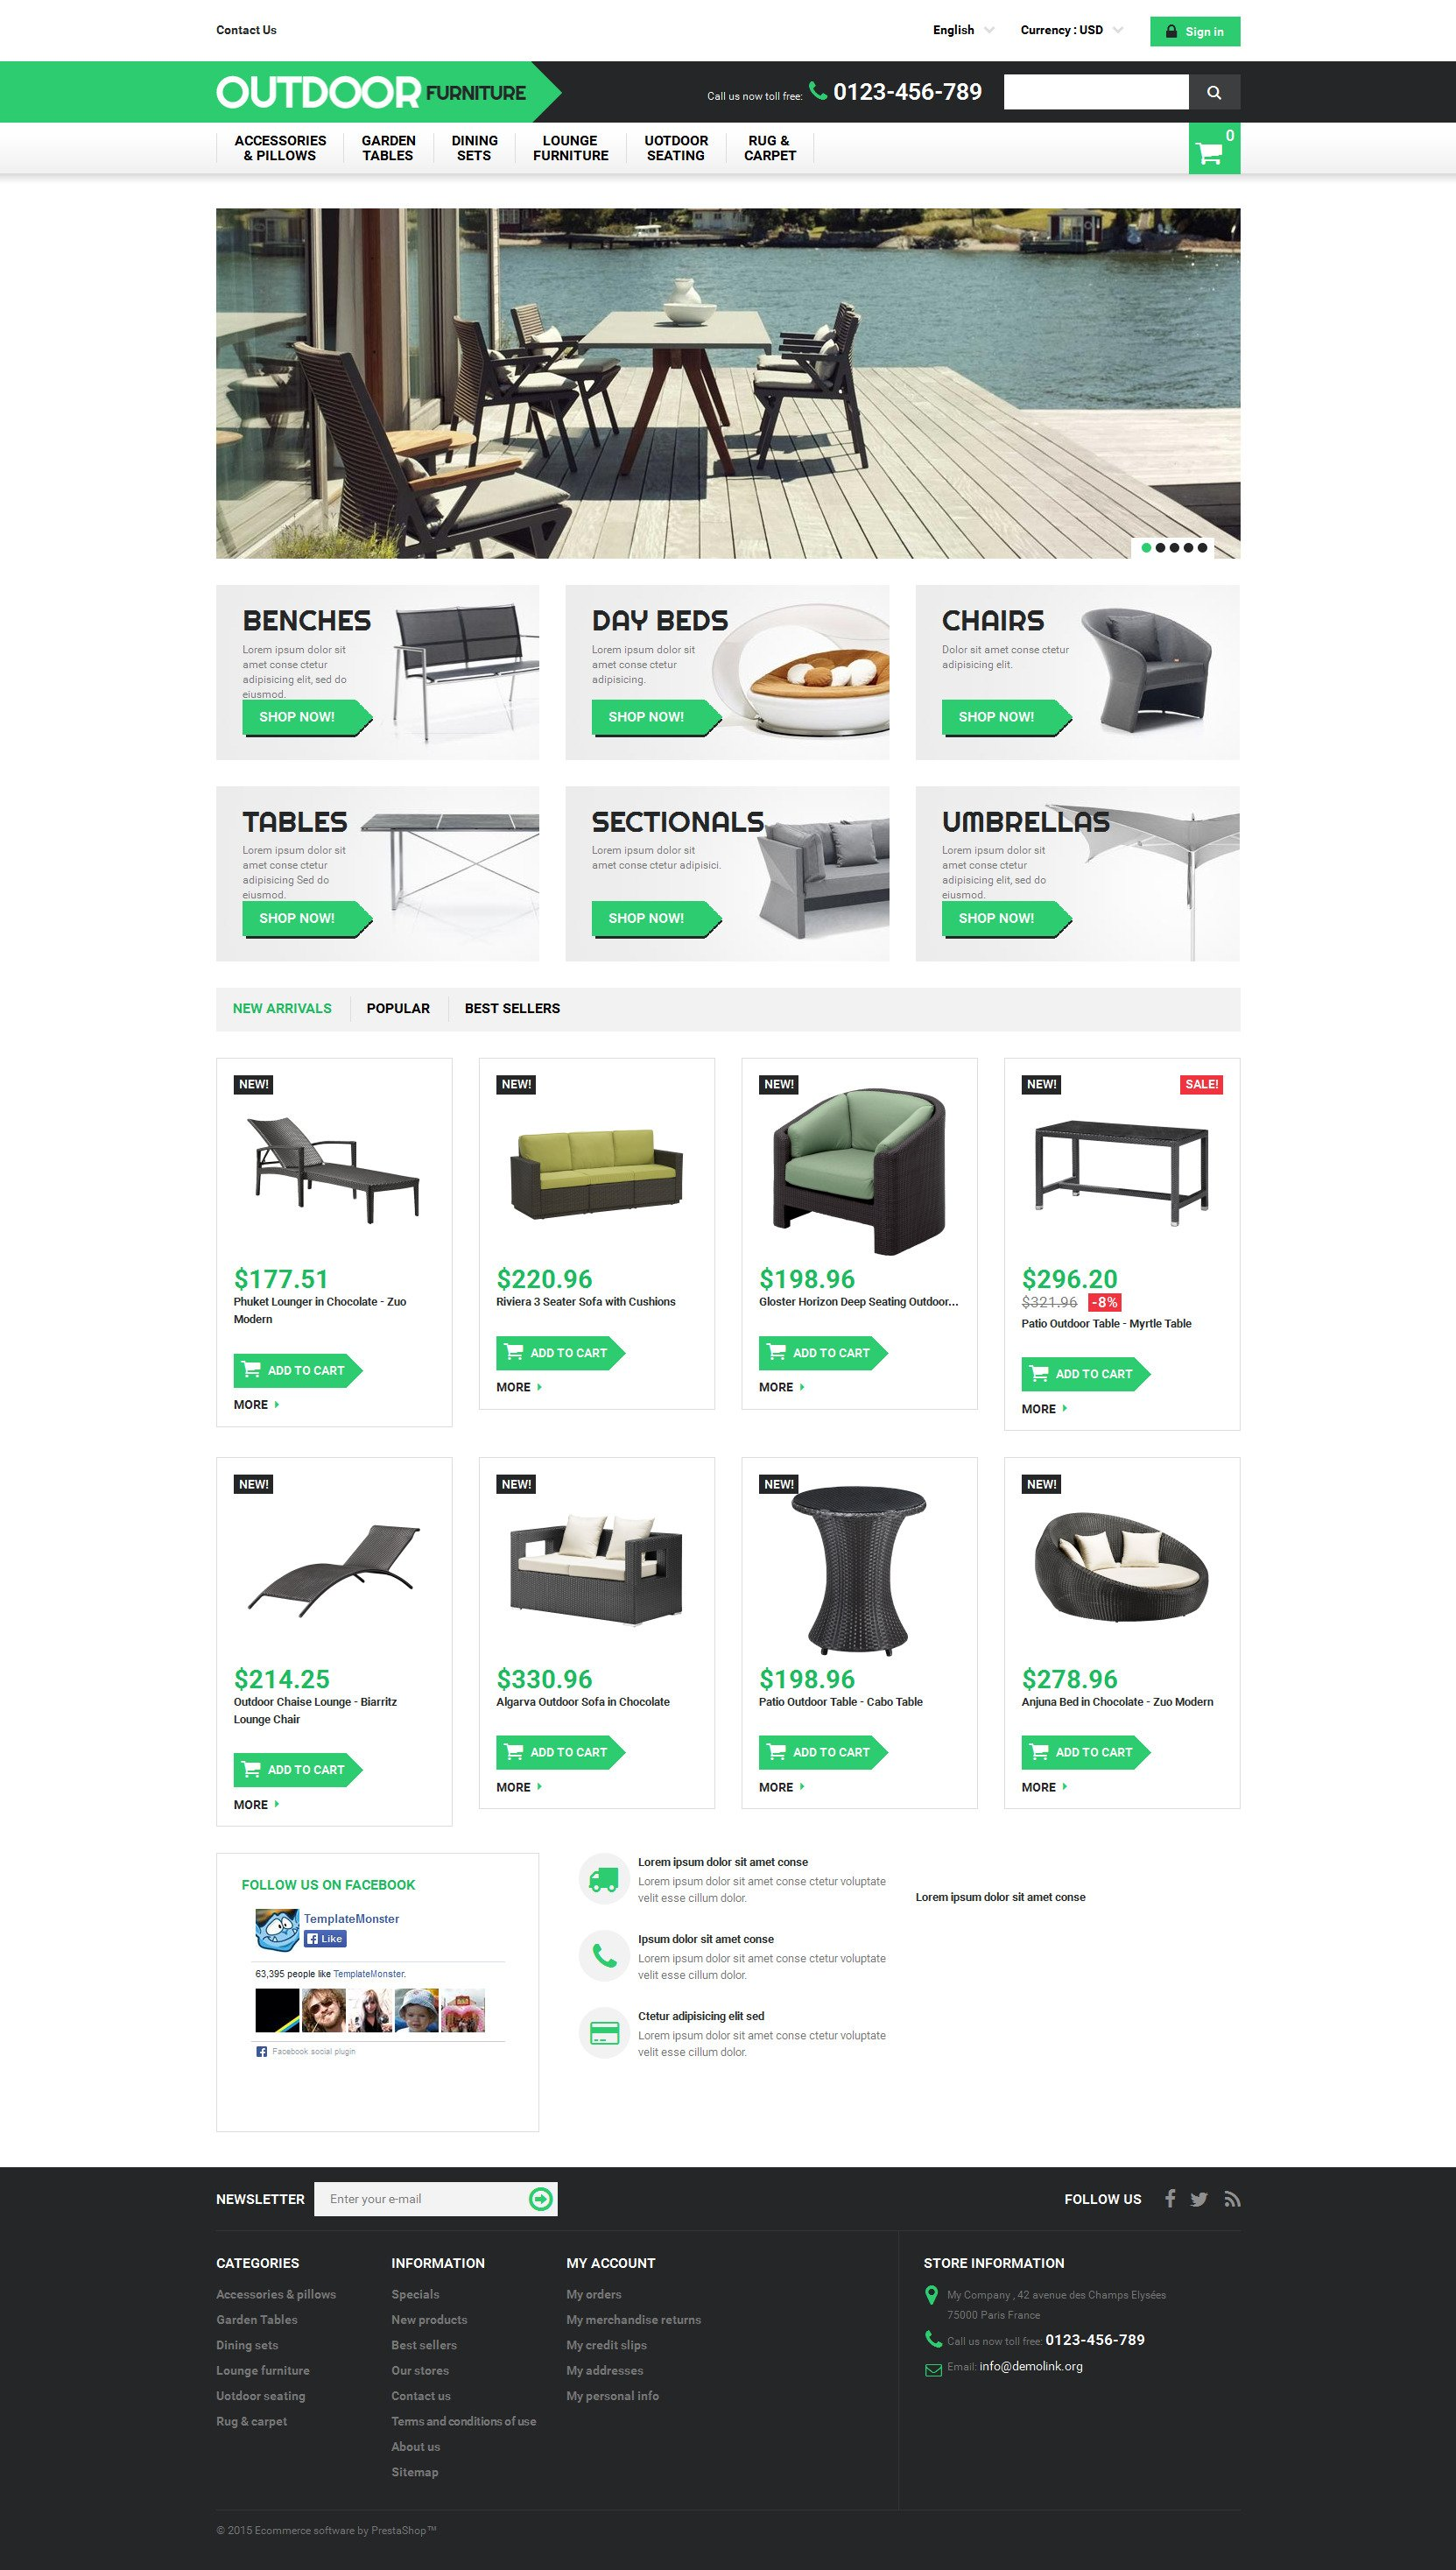 The Outdoor Furniture Company Design PrestaShop Design 53025, one of the best PrestaShop themes of its kind (interior & furniture, most popular), also known as outdoor furniture company design PrestaShop template, home solution PrestaShop template, interior PrestaShop template, profile designer PrestaShop template, portfolio PrestaShop template, non-standard PrestaShop template, creative idea PrestaShop template, mirror PrestaShop template, clock PrestaShop template, cutlery PrestaShop template, lighting PrestaShop template, ceiling PrestaShop template, bathroom PrestaShop template, kitchen PrestaShop template, live PrestaShop template, table PrestaShop template, chair PrestaShop template, armchair PrestaShop template, sofa PrestaShop template, order PrestaShop template, client PrestaShop template, support PrestaShop template, service PrestaShop template, decoration PrestaShop template, style PrestaShop template, collection PrestaShop template, catalogue and related with outdoor furniture company design, home solution, interior, profile designer, portfolio, non-standard, creative idea, mirror, clock, cutlery, lighting, ceiling, bathroom, kitchen, live, table, chair, armchair, sofa, order, client, support, service, decoration, style, collection, catalogue, etc.